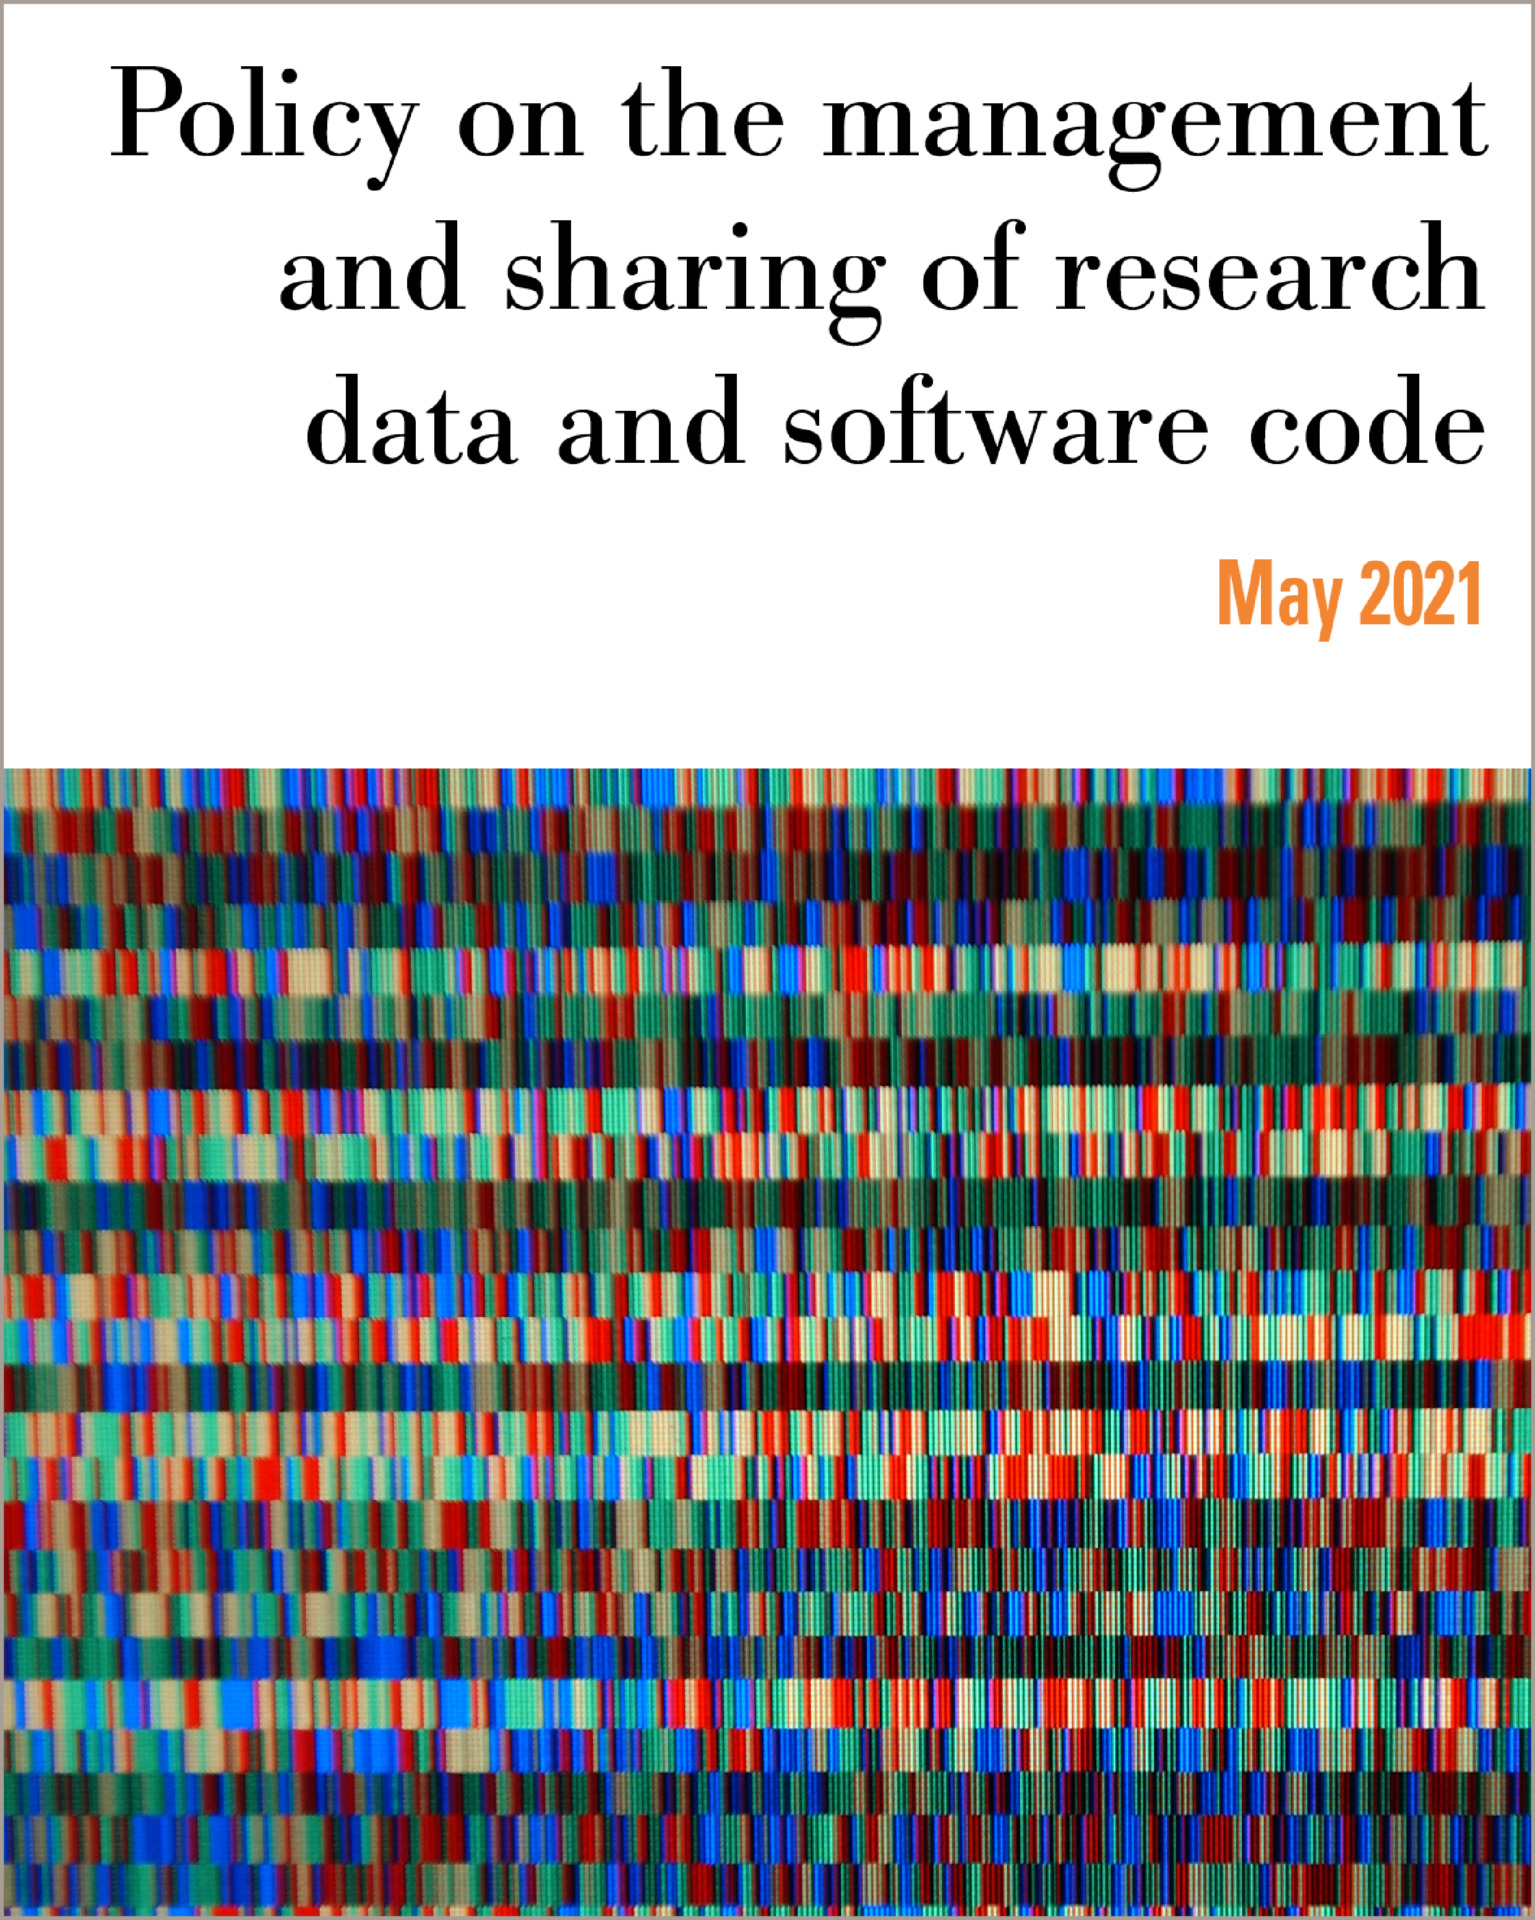 Policy on the management and sharing of research data and software code